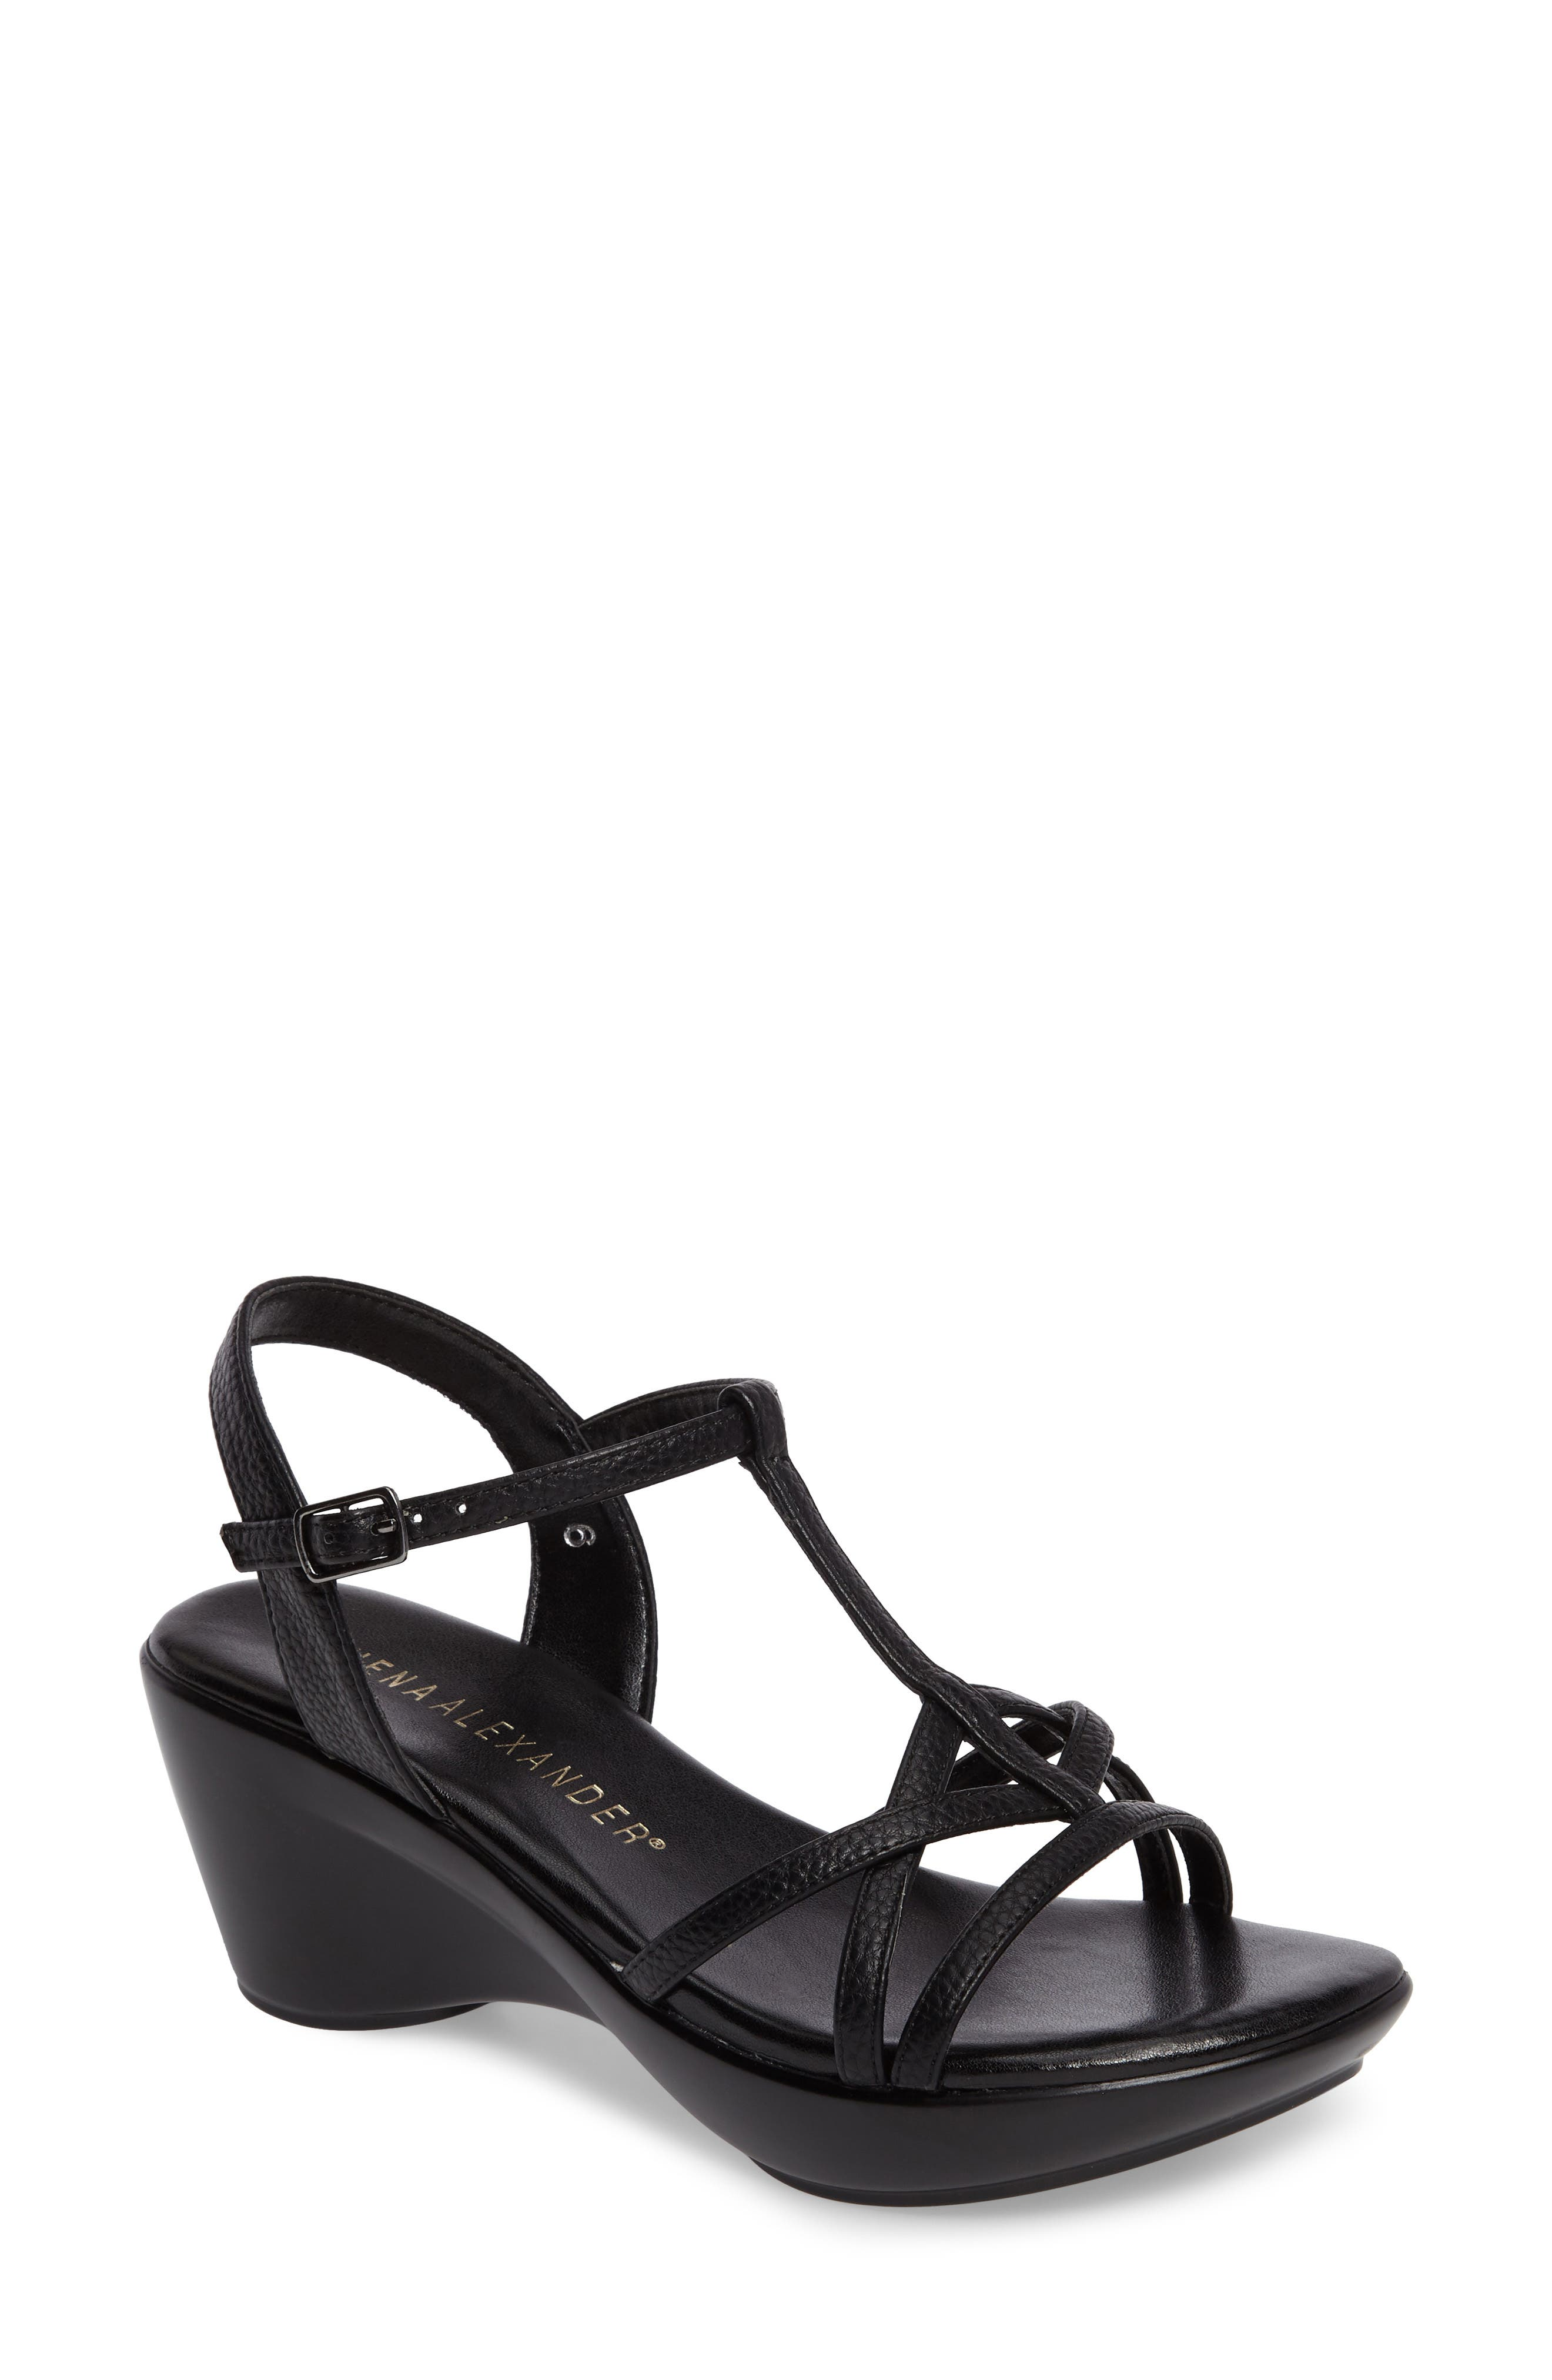 Cassort T-Strap Sandal,                         Main,                         color,